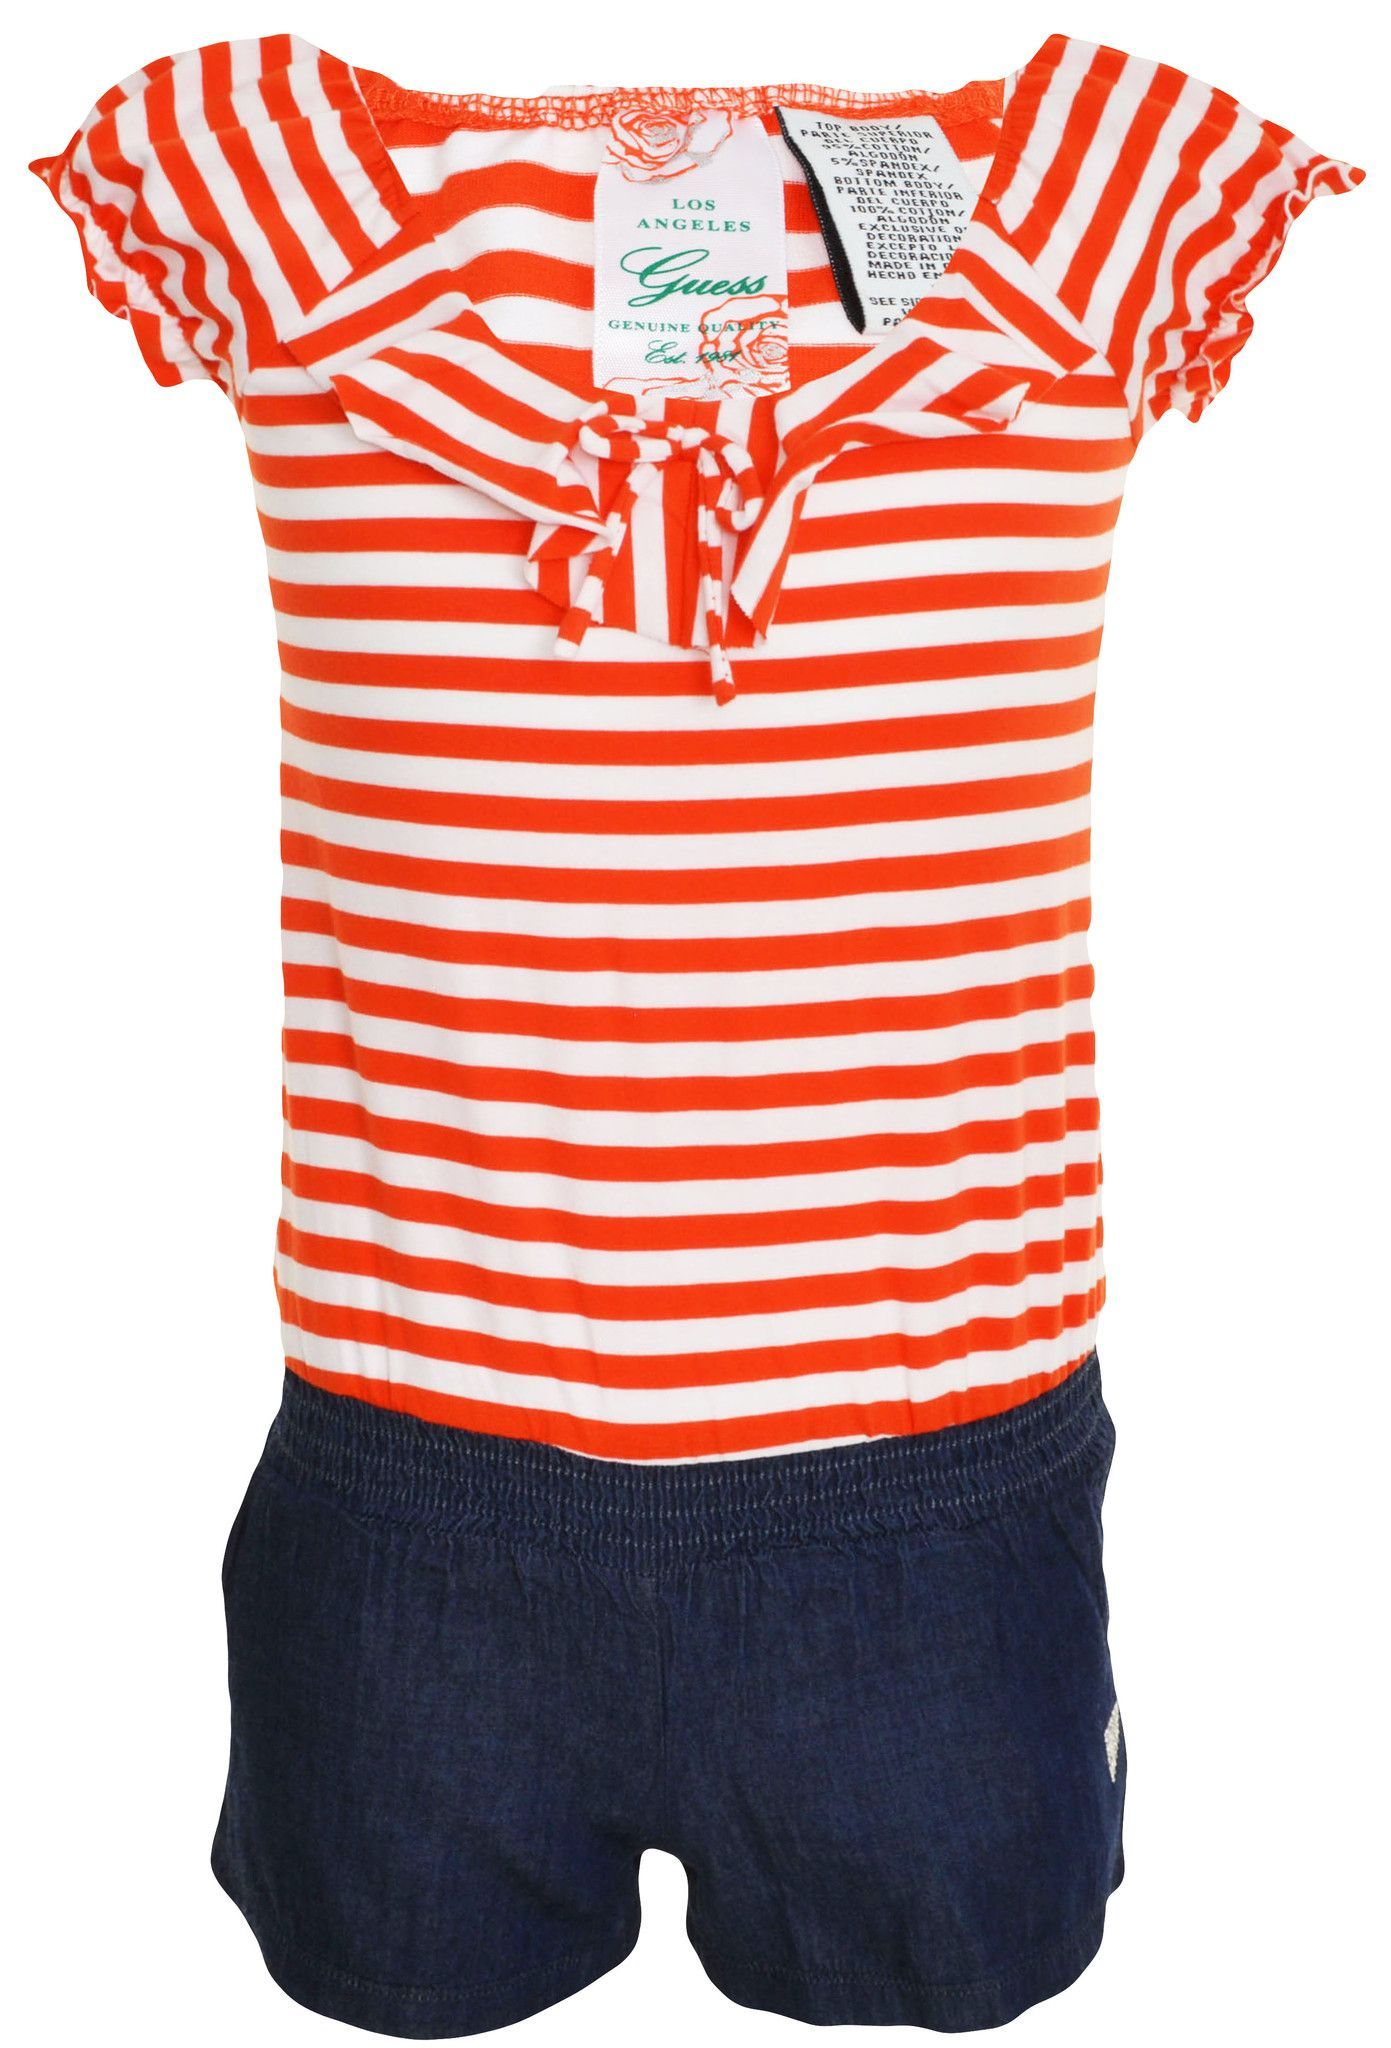 Guess Jeans Girls Shorts Romper Orange Striped